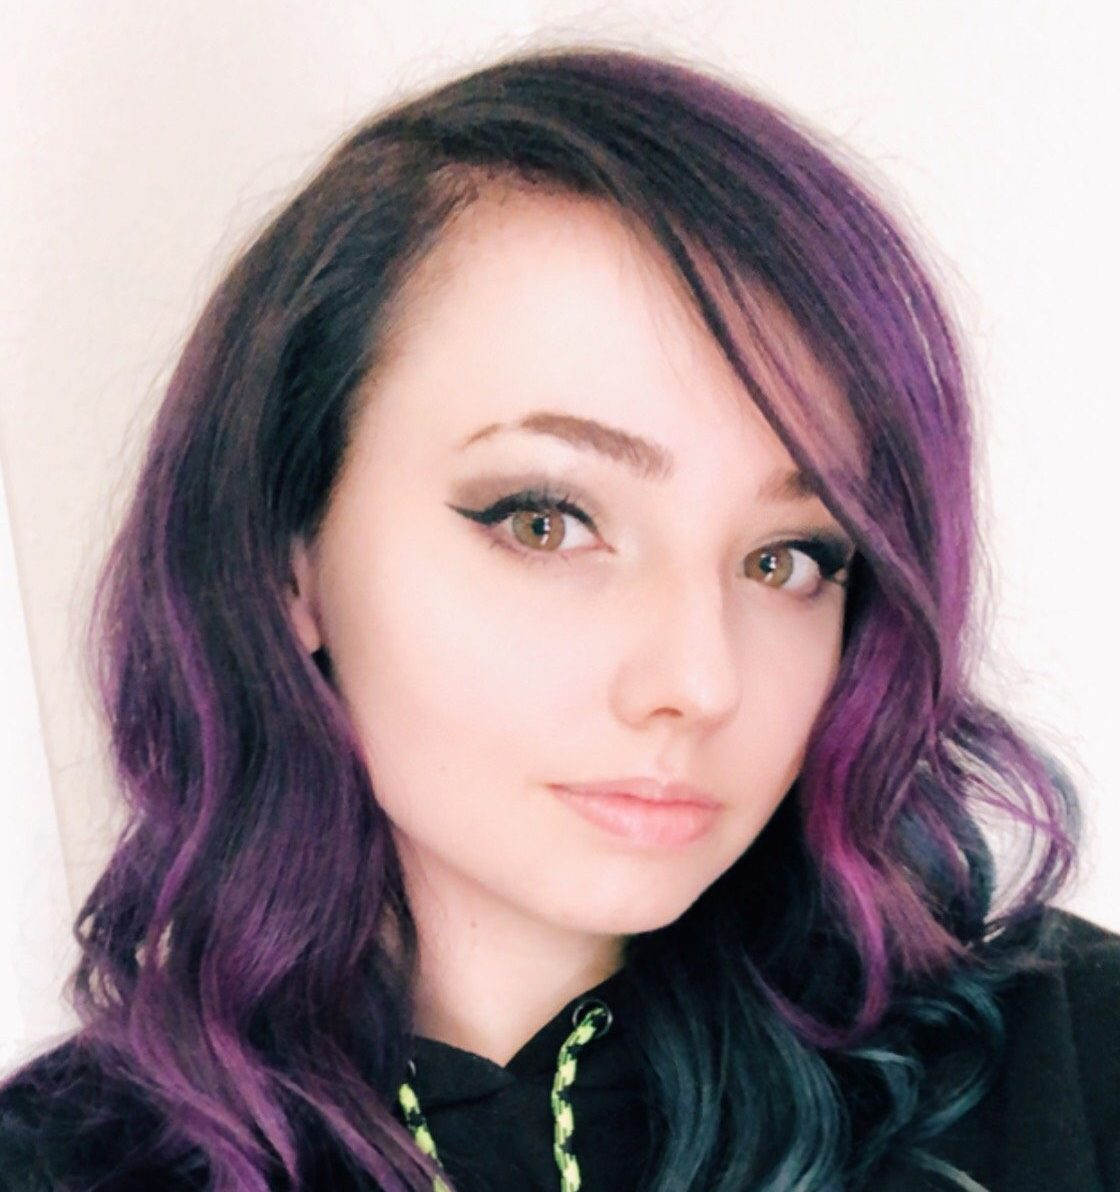 Charlee, a.k.a. Charleemanderz, is a full-time Twitch Streamer with a lot going for her.